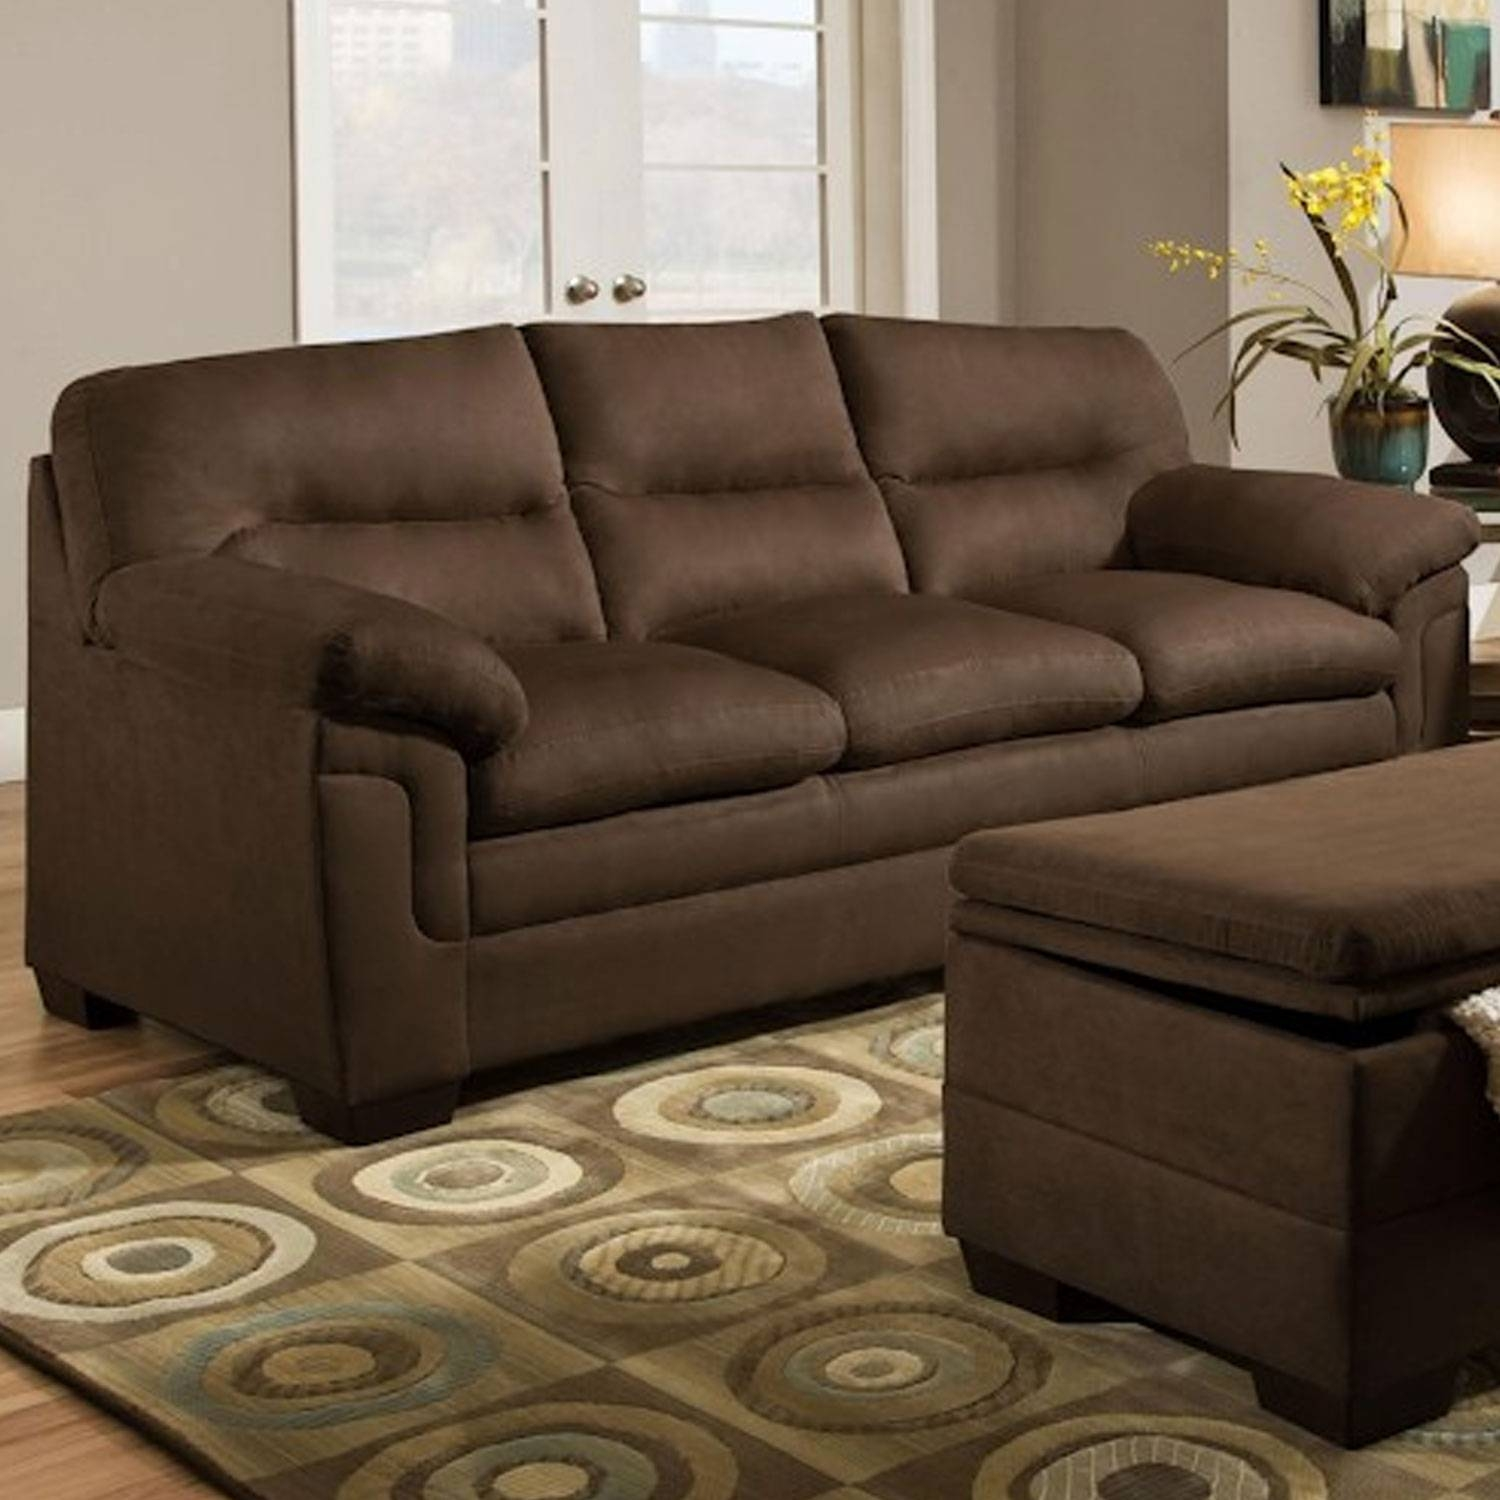 Furniture: Simmons Sofa For Comfortable Seating — Threestems within Simmons Microfiber Sofas (Image 12 of 15)